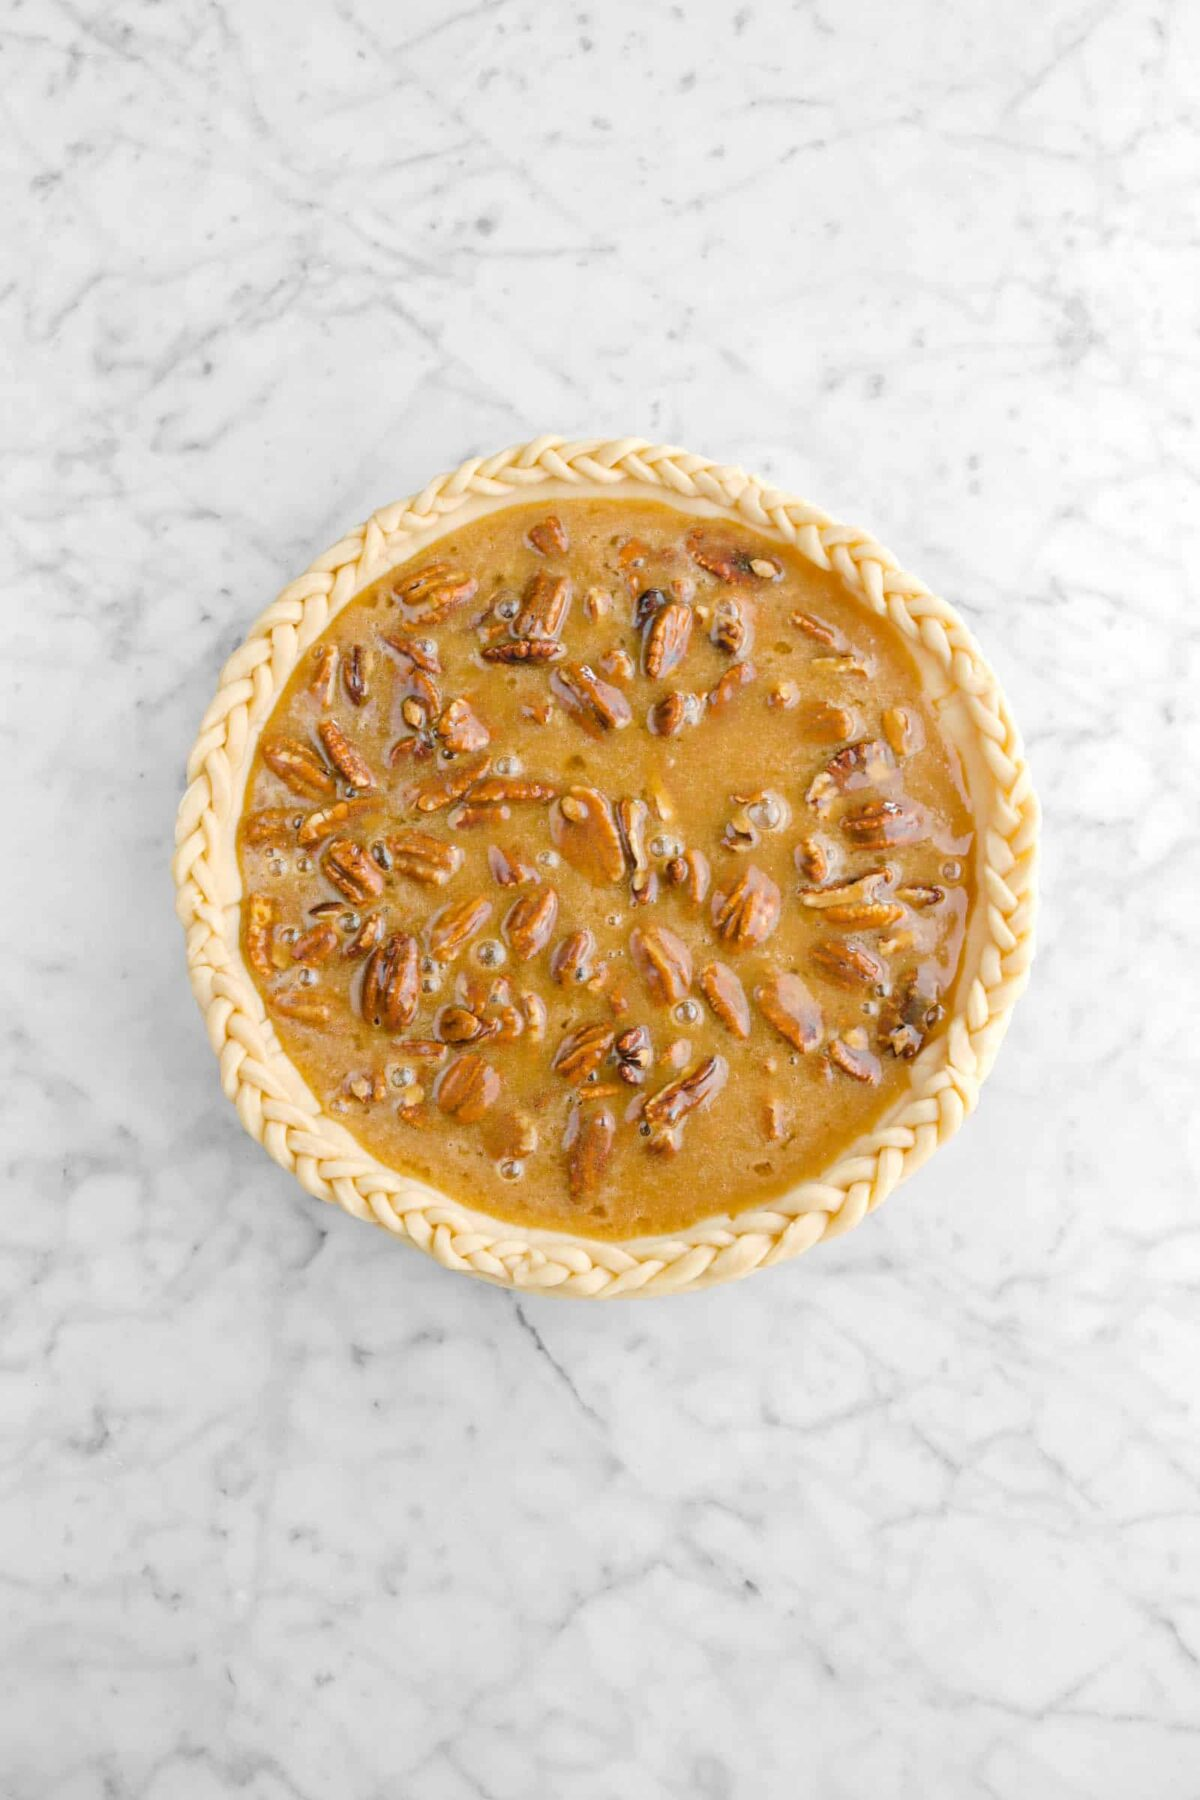 pie filling and pecans in unbaked pie crust